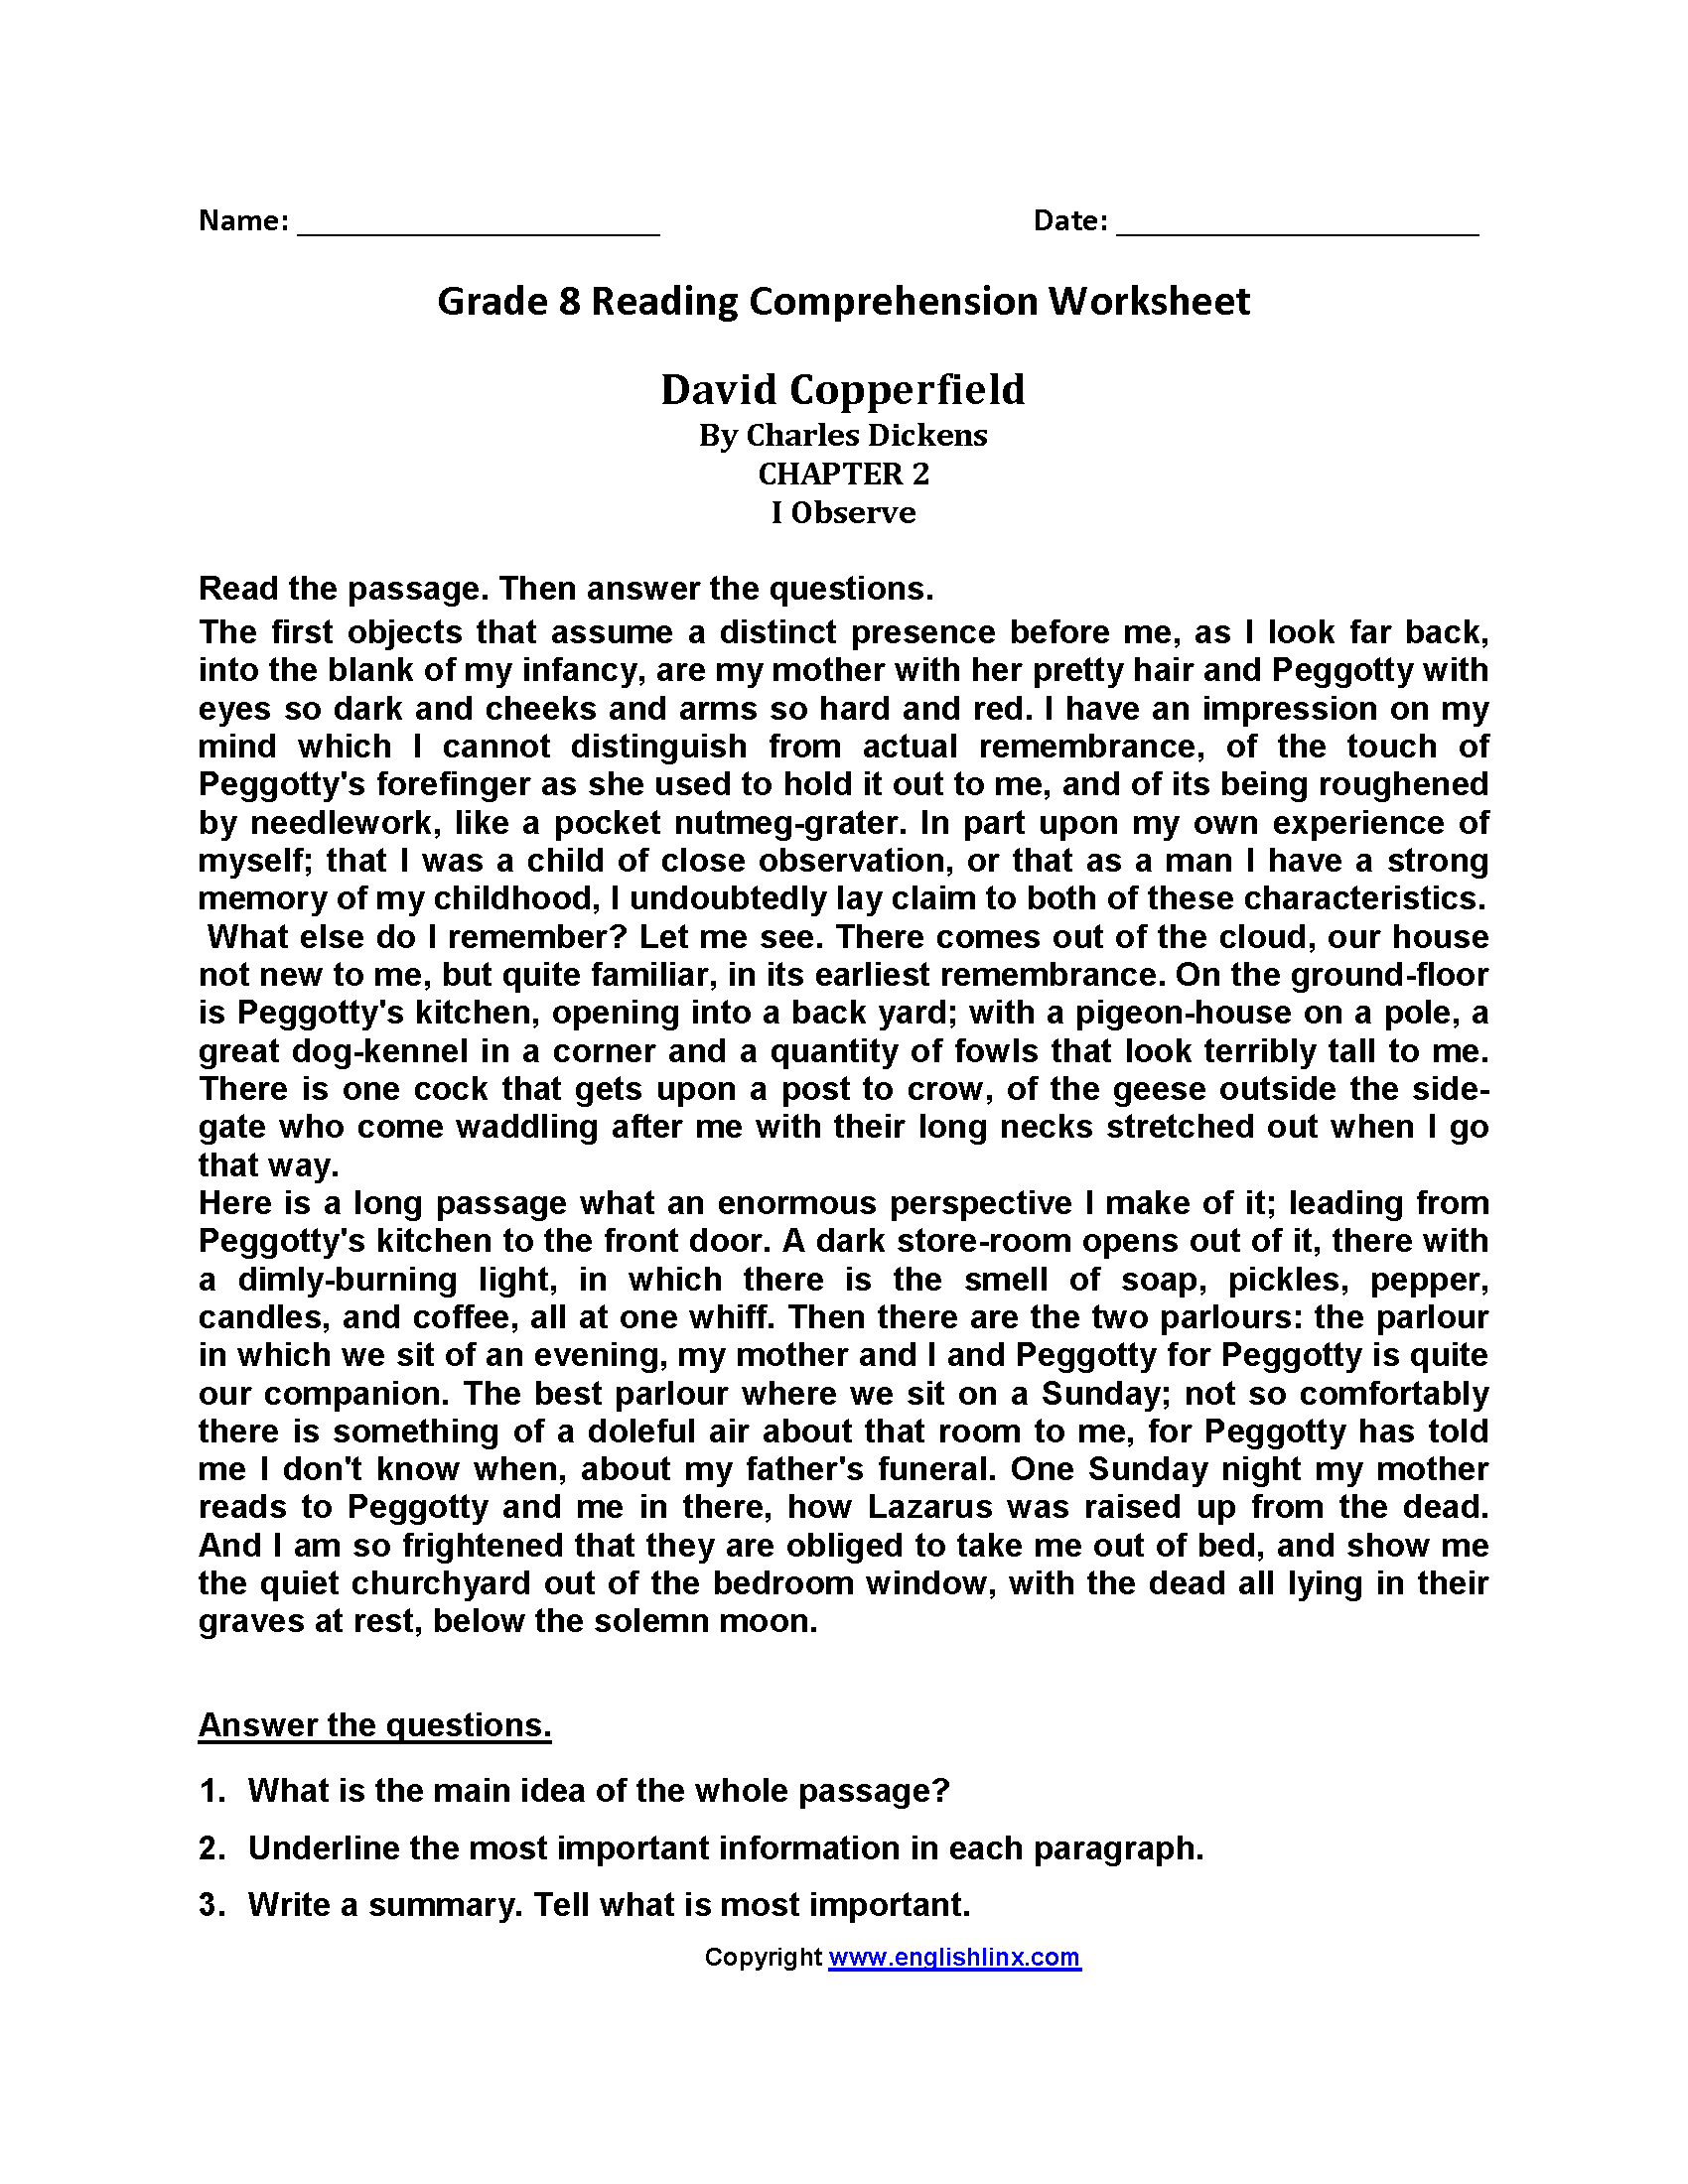 David Copperfield Eighth Grade Reading Worksheets   Reading comprehension  worksheets [ 2200 x 1700 Pixel ]